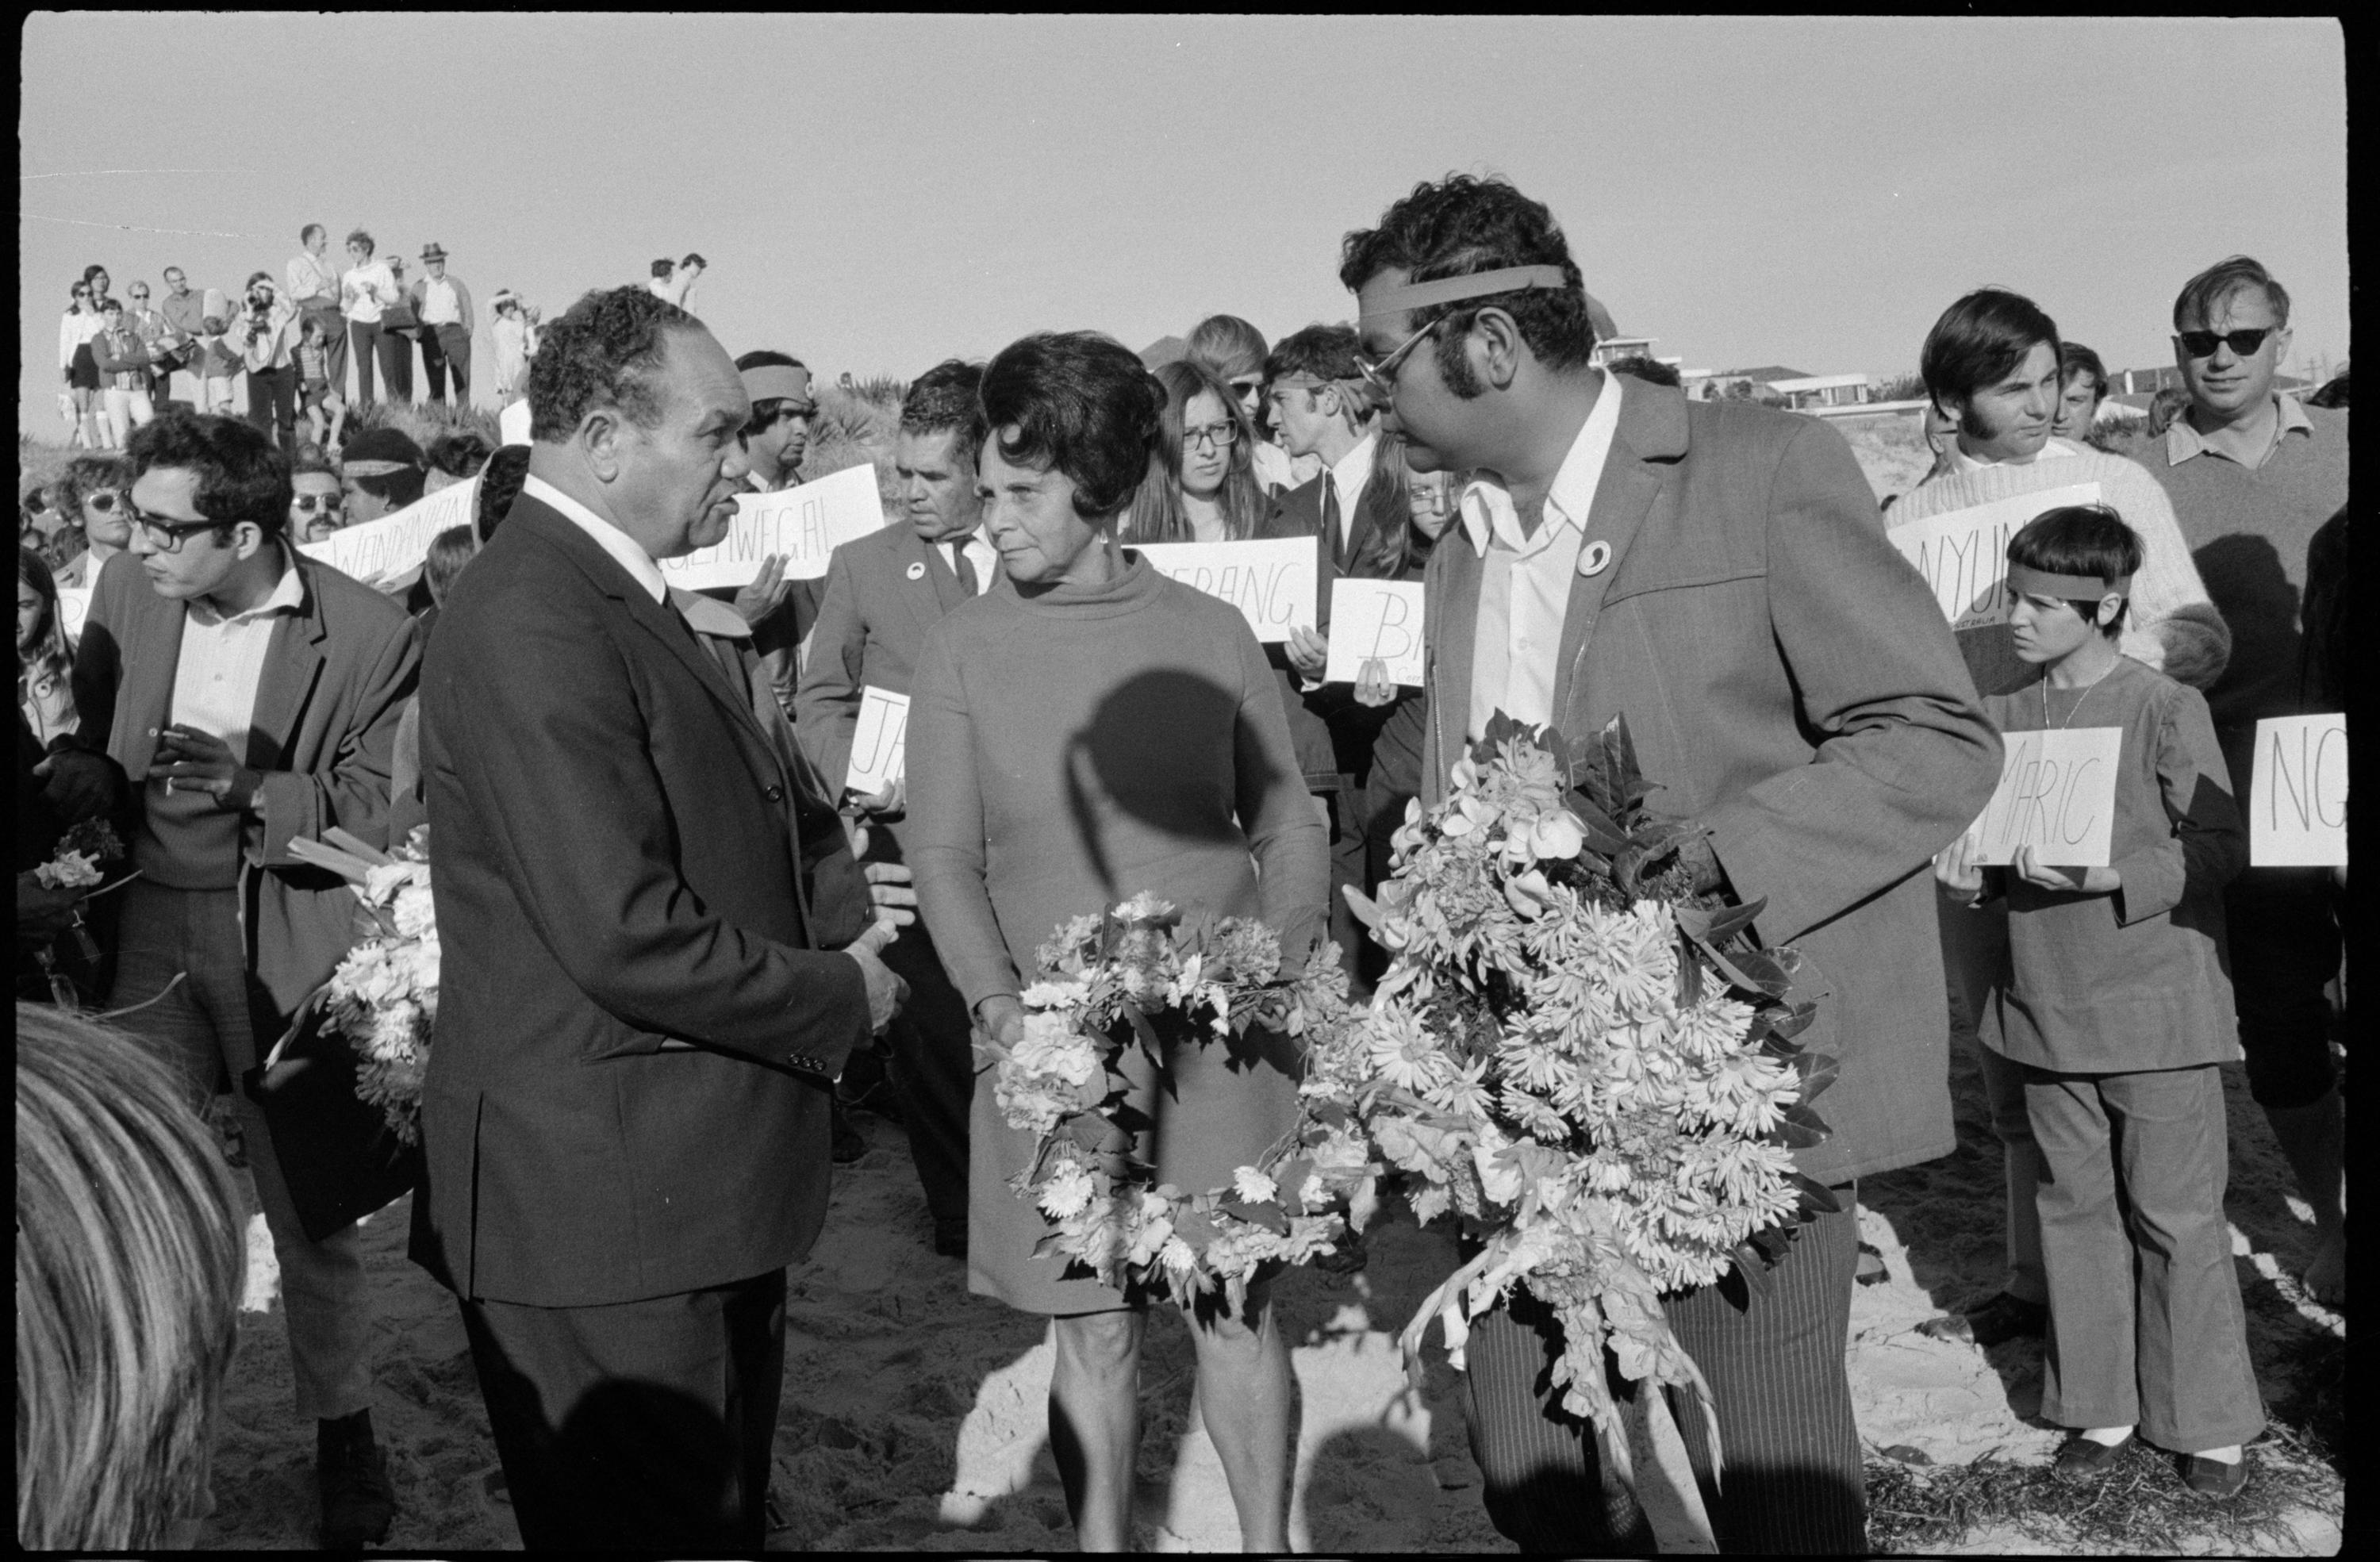 Tribune negatives including meeting of FCAATSI leaders at Sydney Town Hall and protestors at Day of Mourning memorial gathering and procession in Sydney, 28 April 1970-29 April 1970